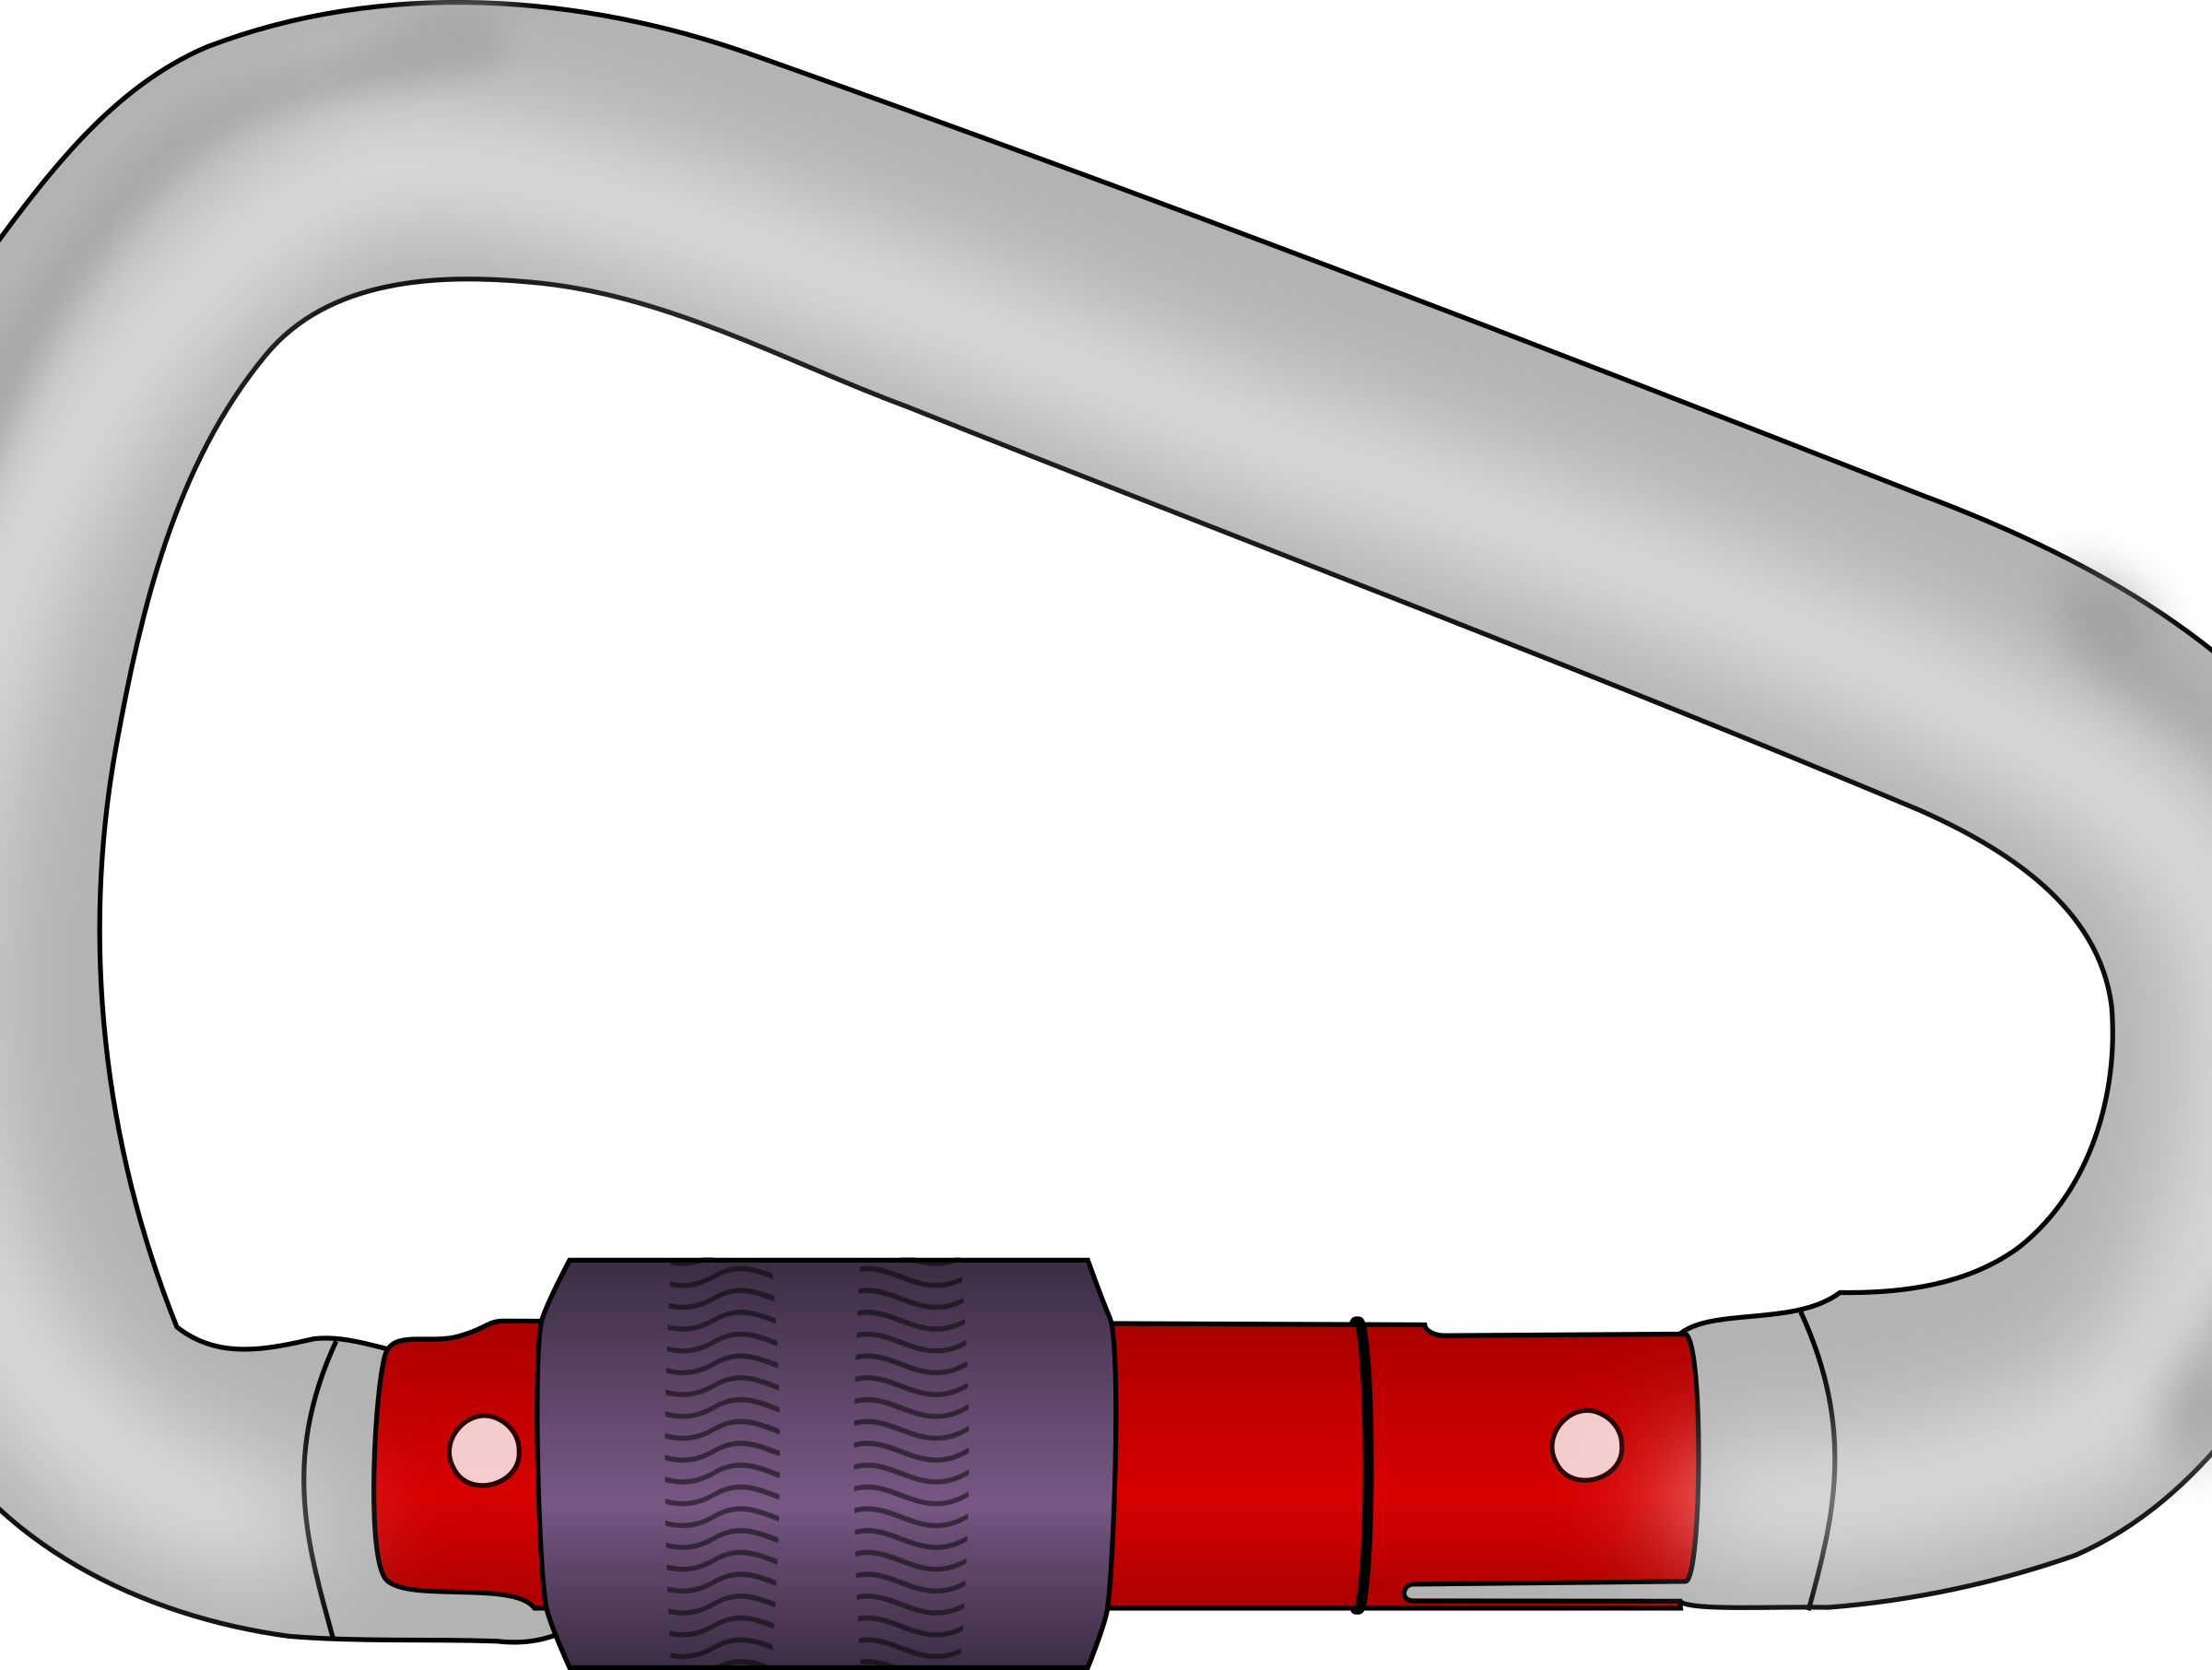 carabiner by Telemachos